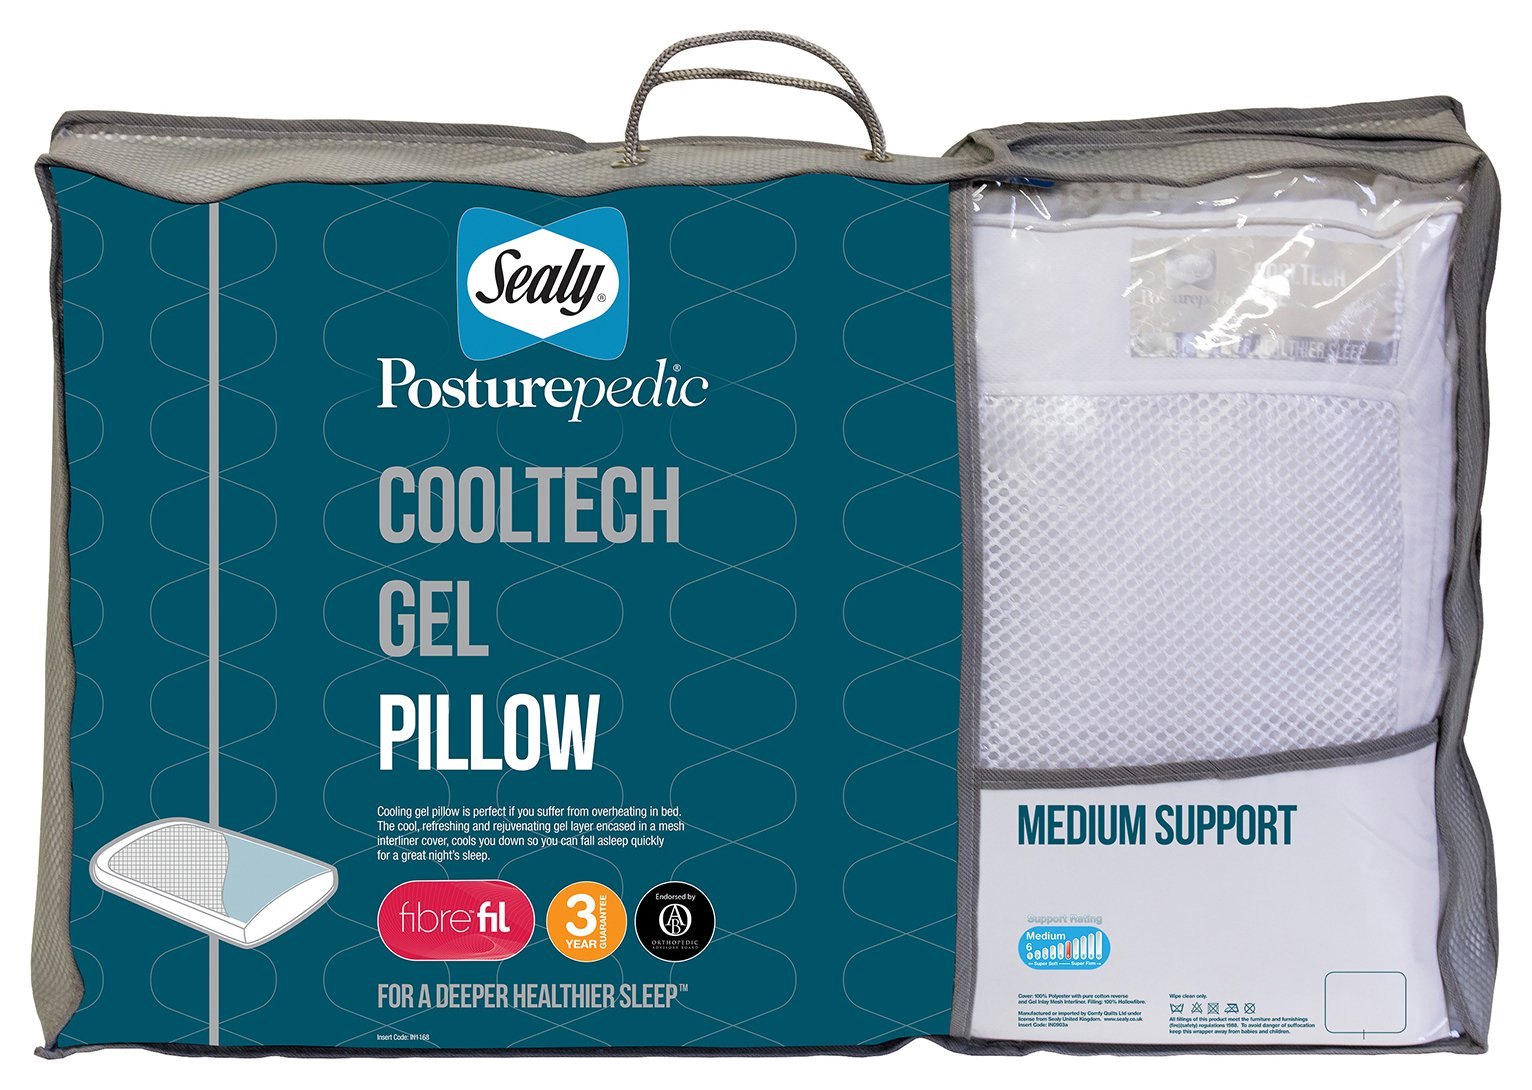 sealy posturepedic cooltech gel pillow.